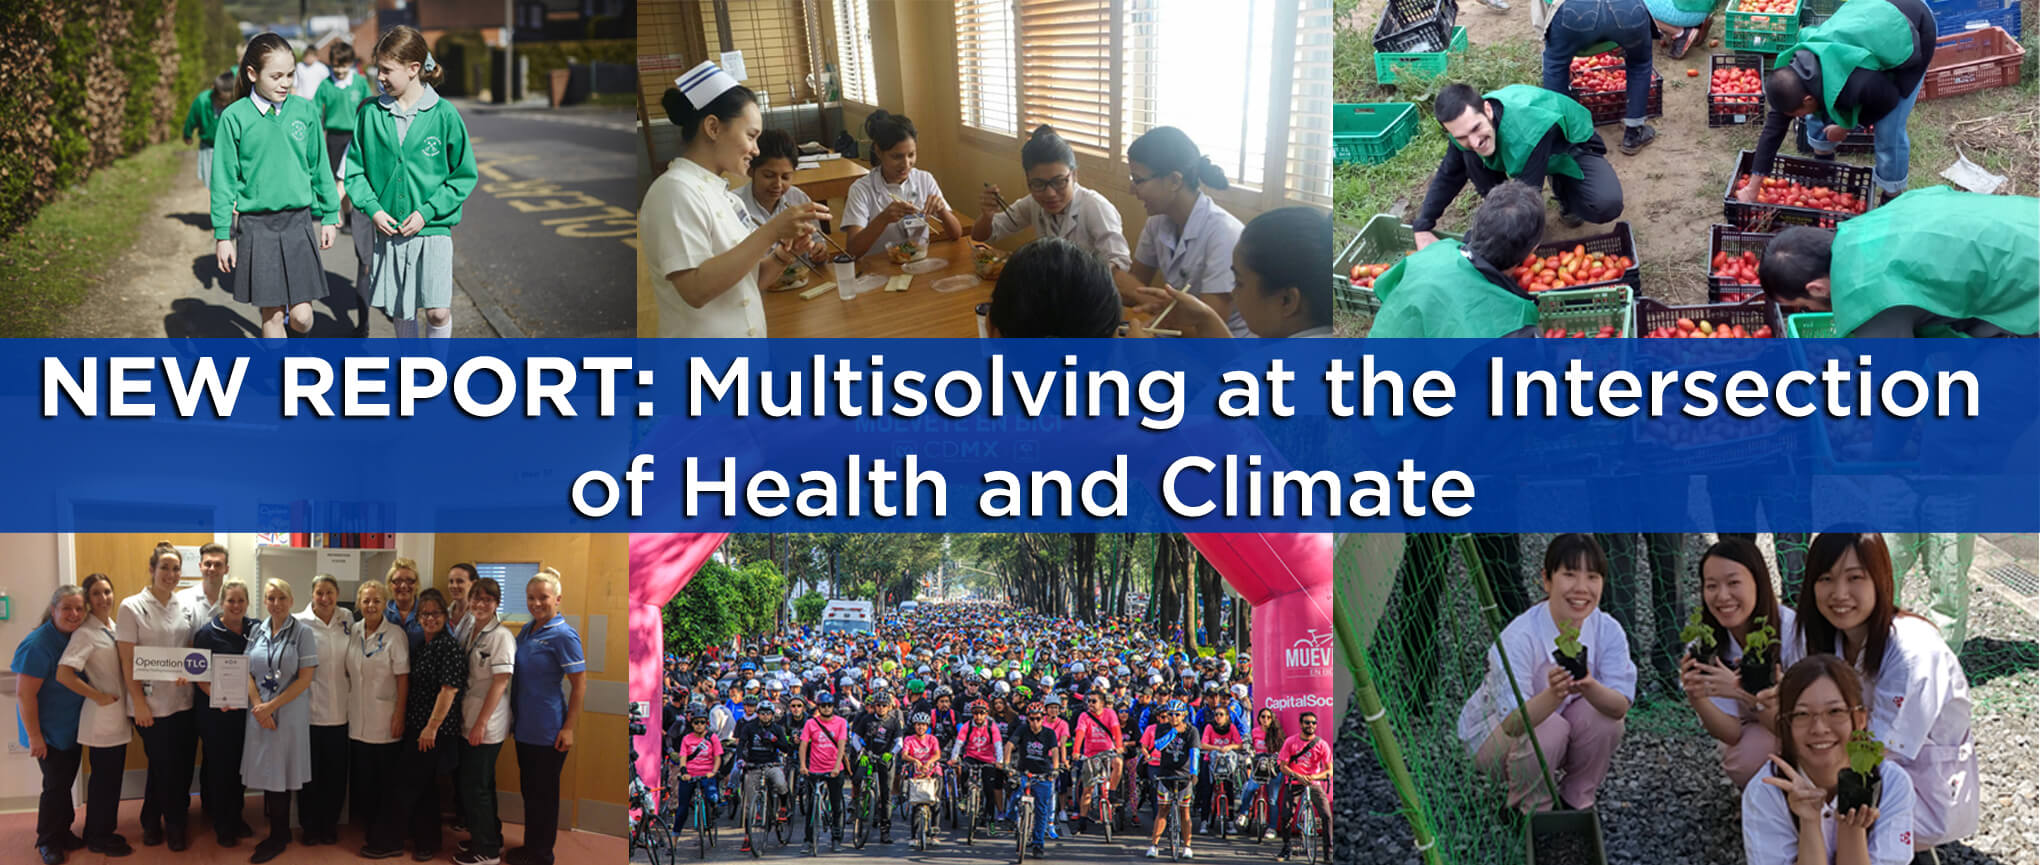 New report: Multisolving at the Intersection of Health and Climate